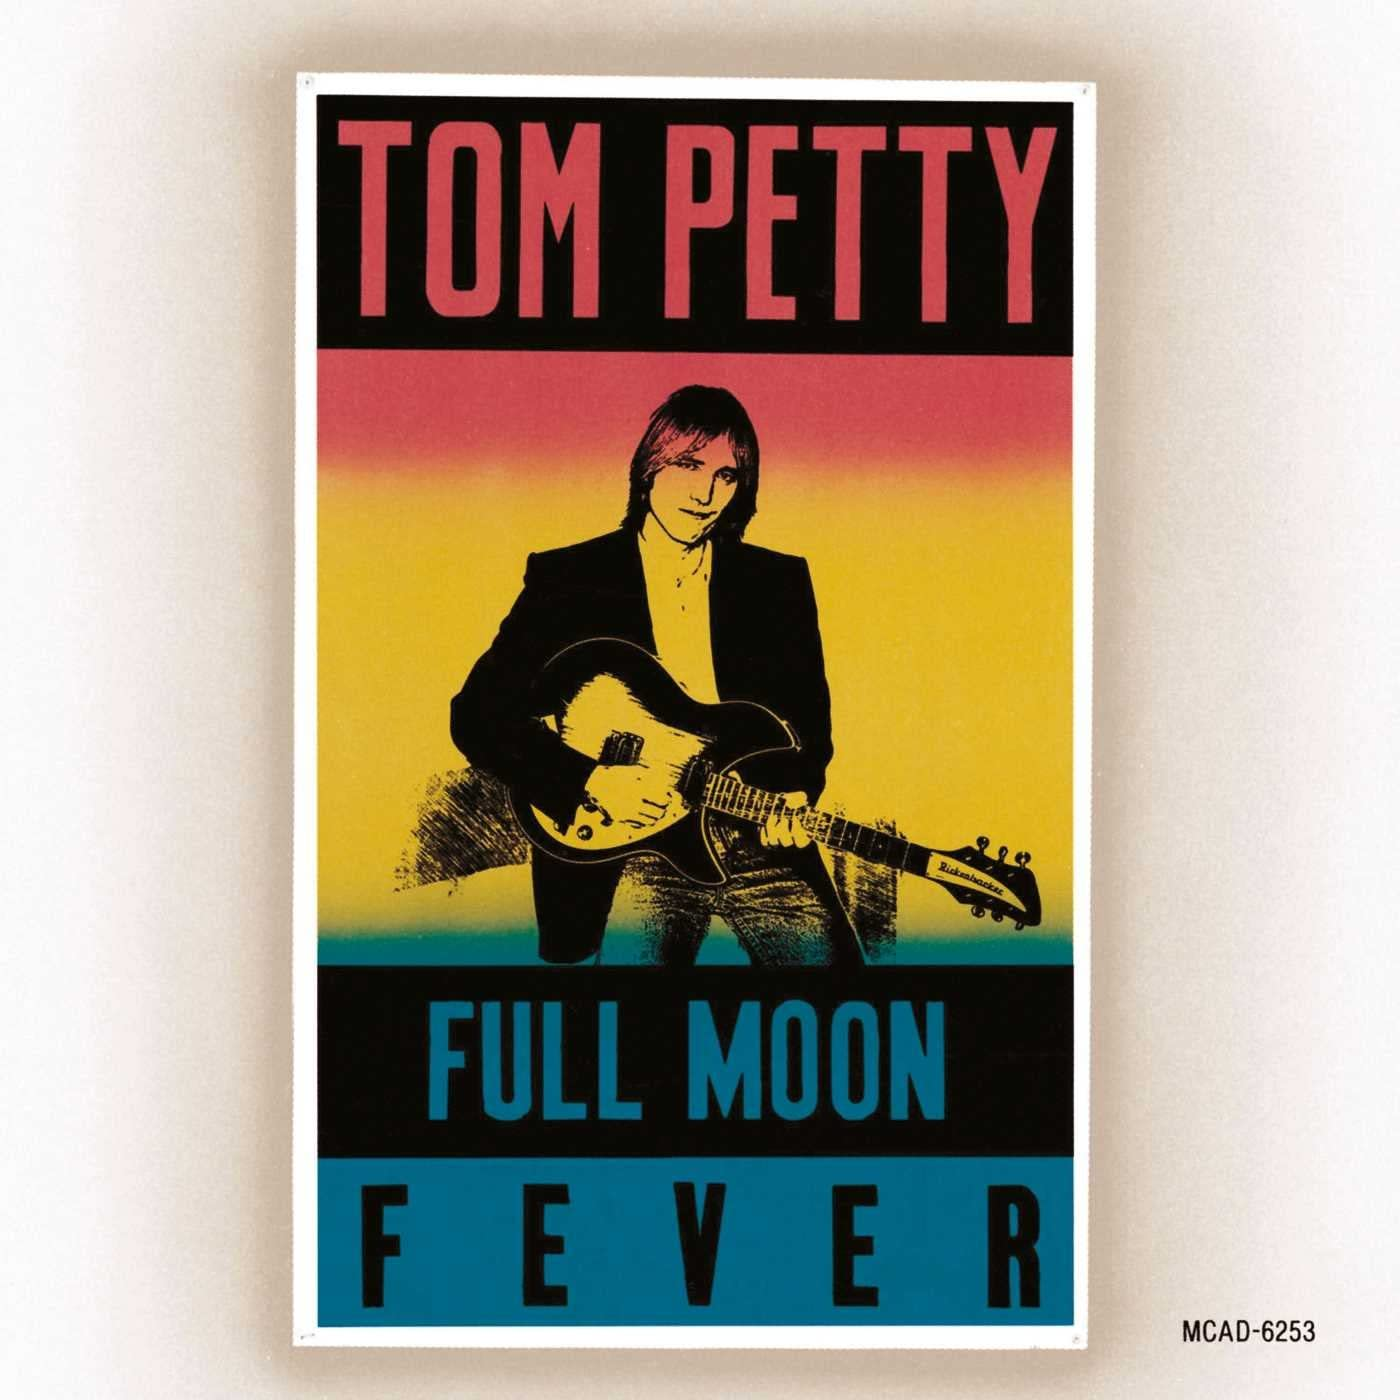 Full Moon Fever (LP)